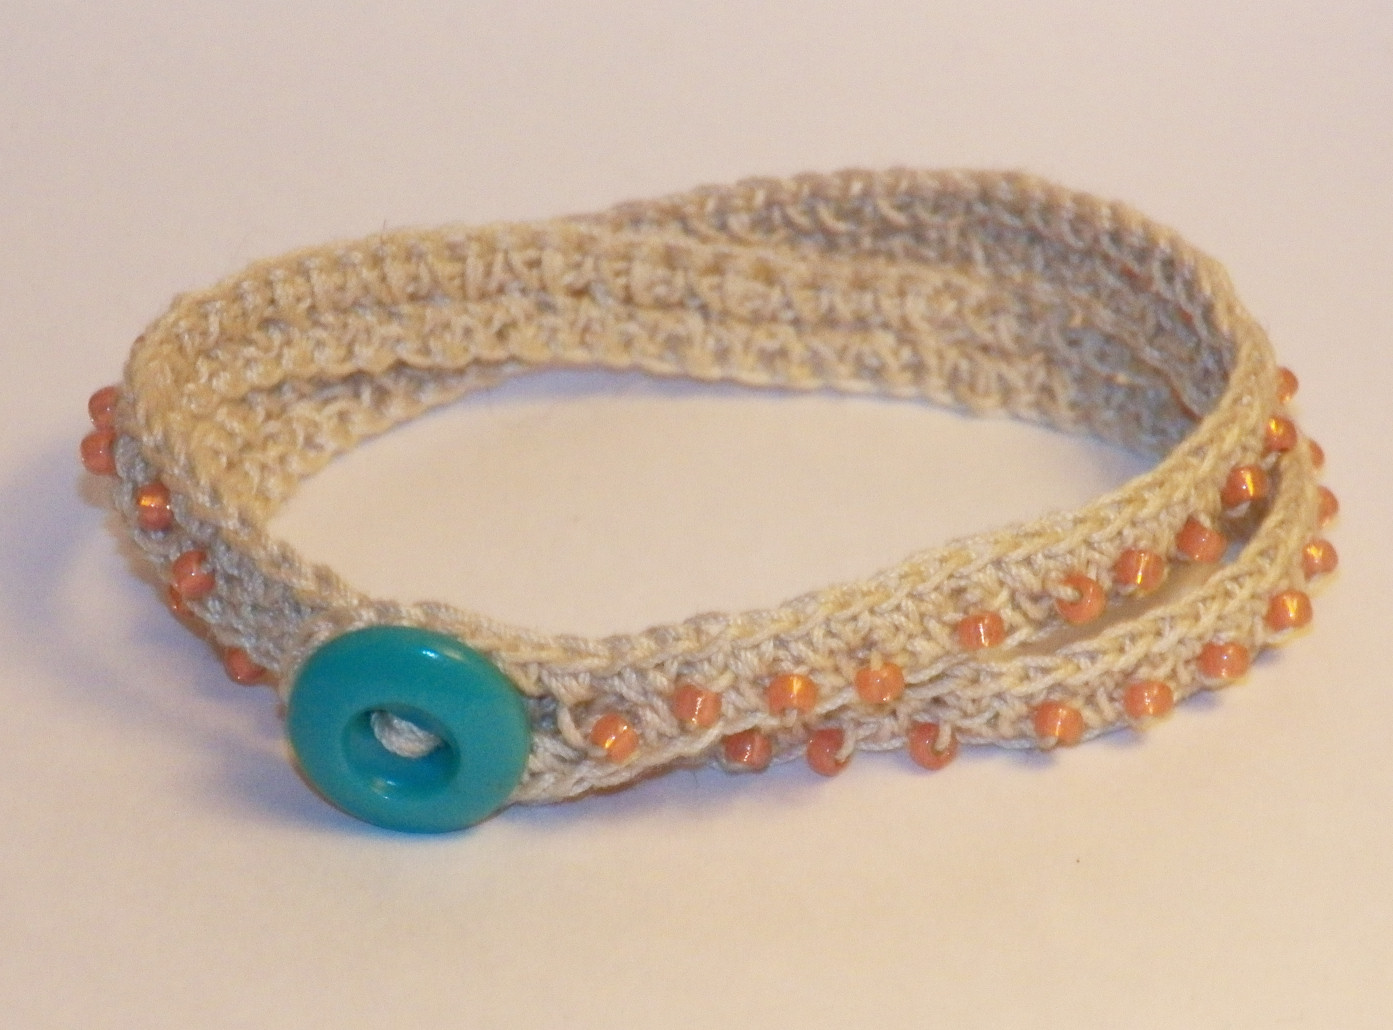 Crochet Beaded Bracelets Instructions Crochet Beaded Wrap Bracelet